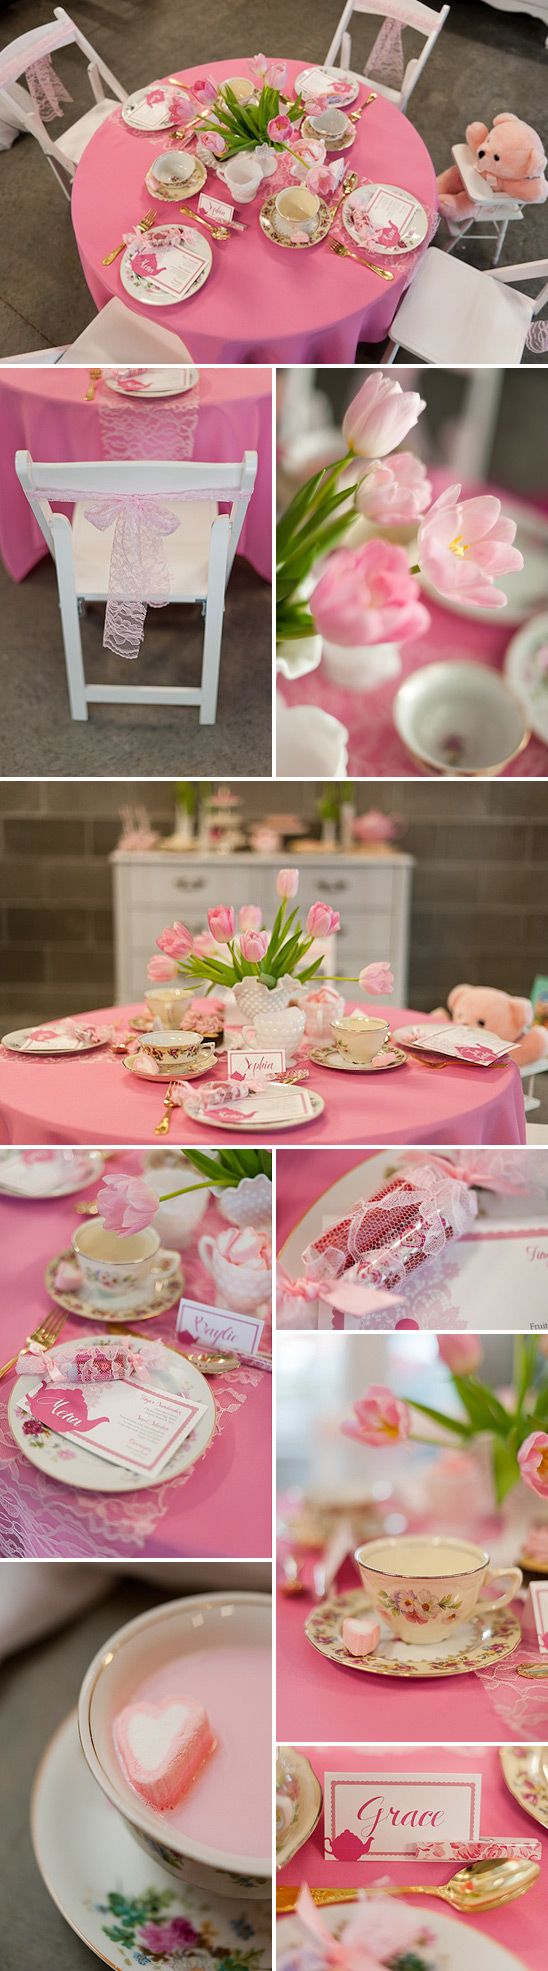 Google Image Result for http://www.ontobaby.com/wp-content/uploads/2012/03/pink-girly-tea-party-3.jpg